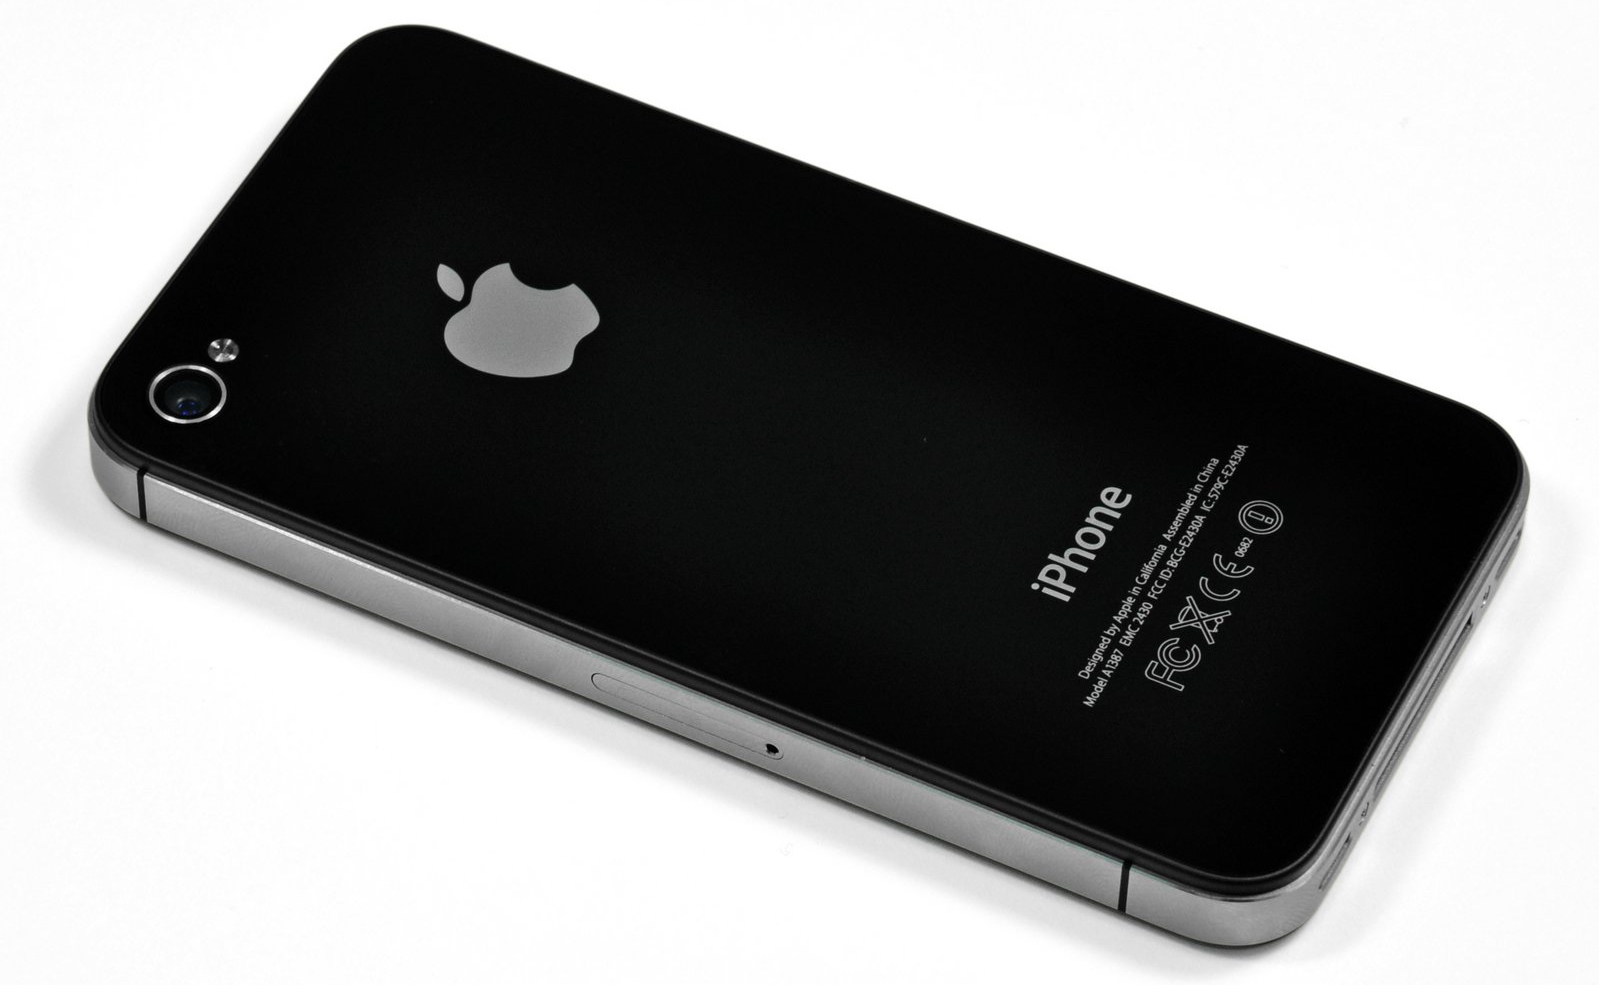 iPhone 4s, seen from the back.